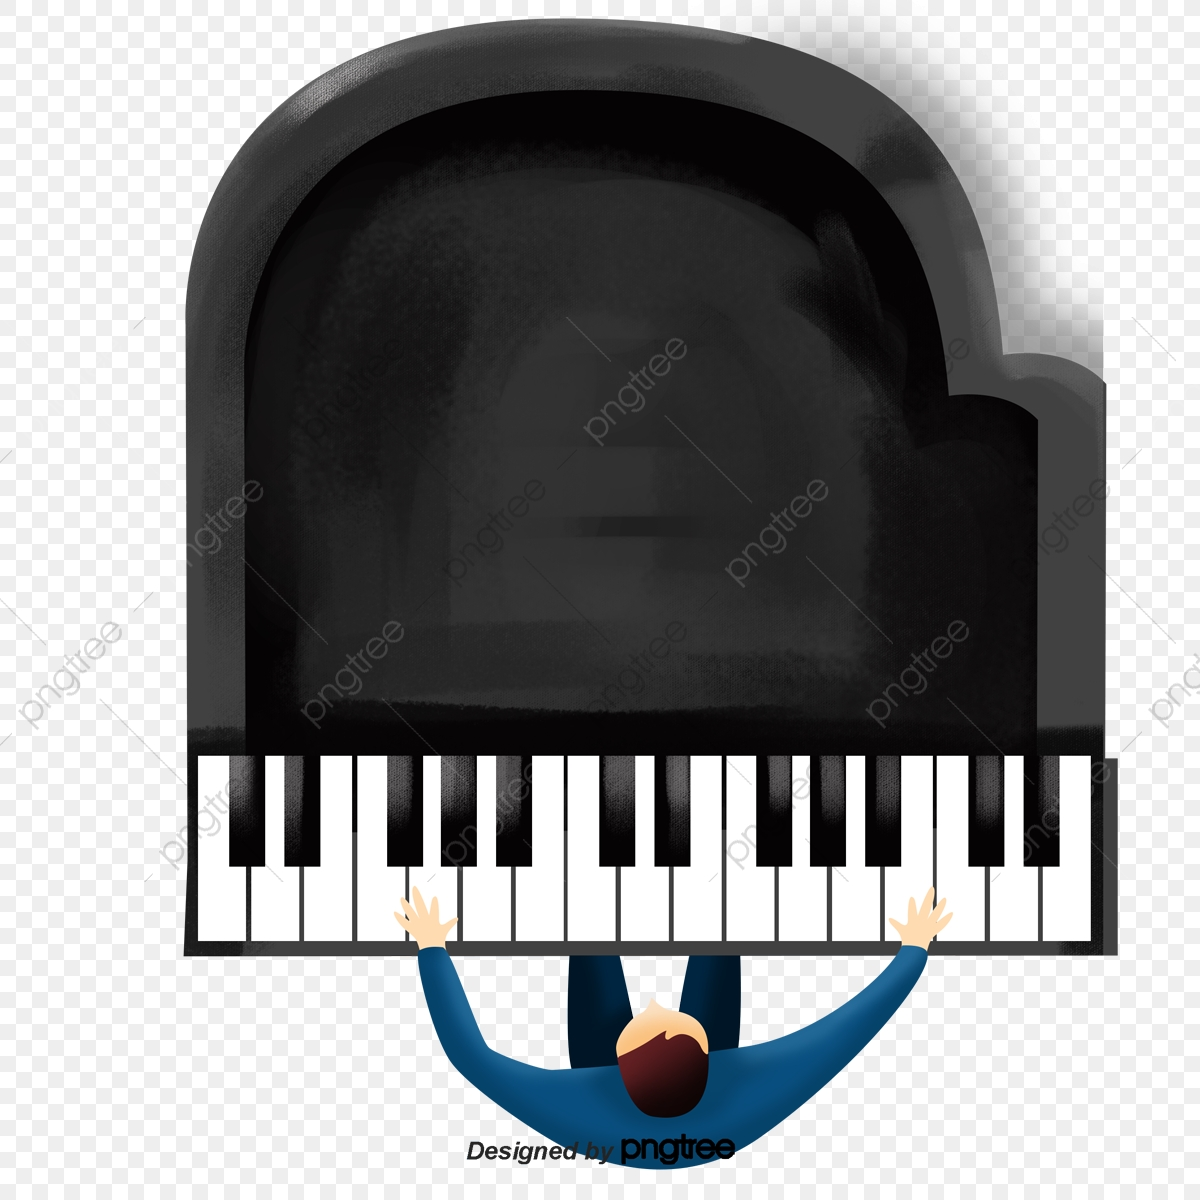 A Man Who Plays The Piano In Cartoon, Musical Instruments